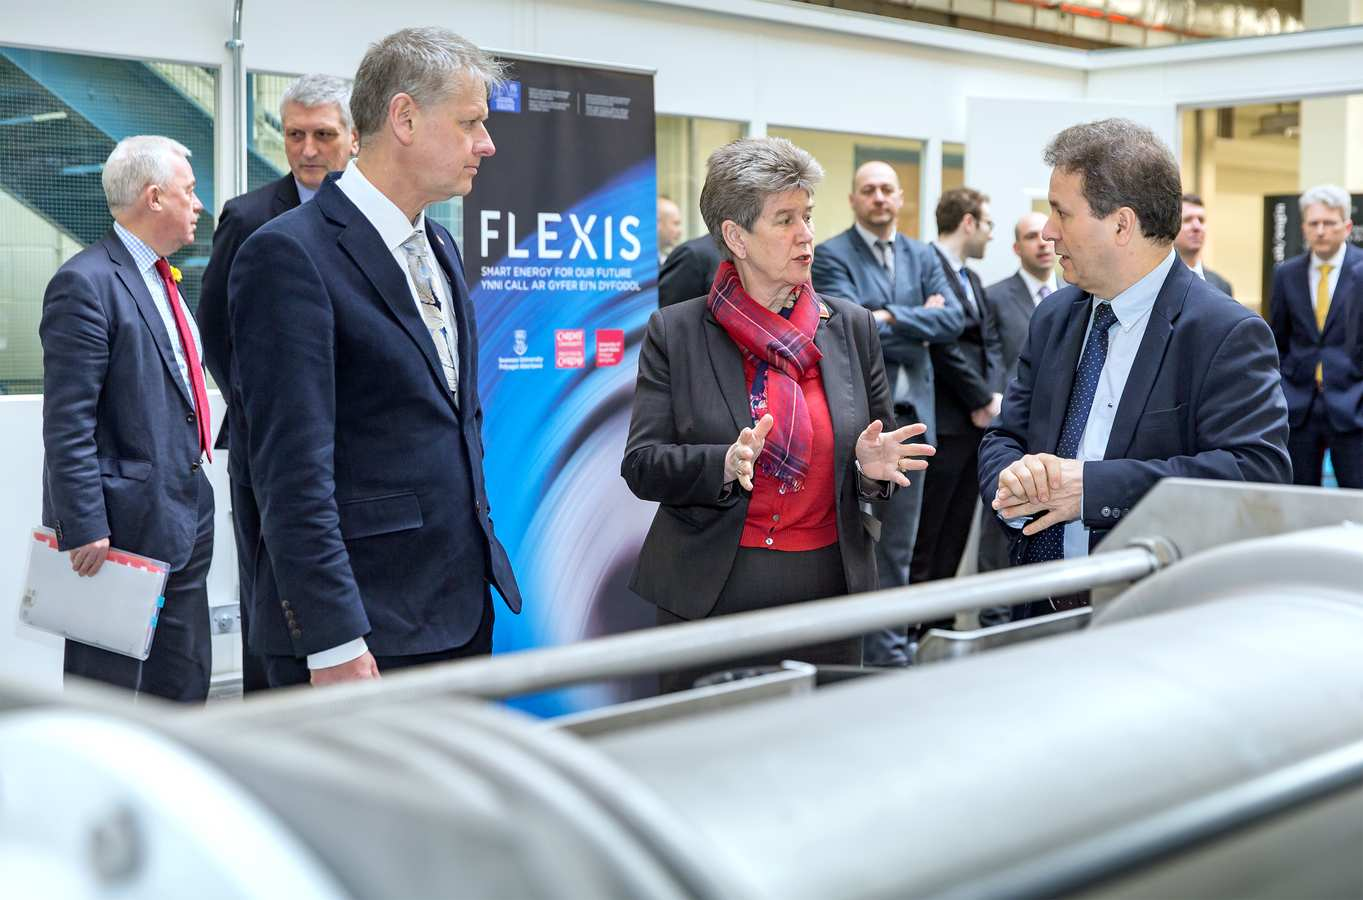 The launch of the Flexis project